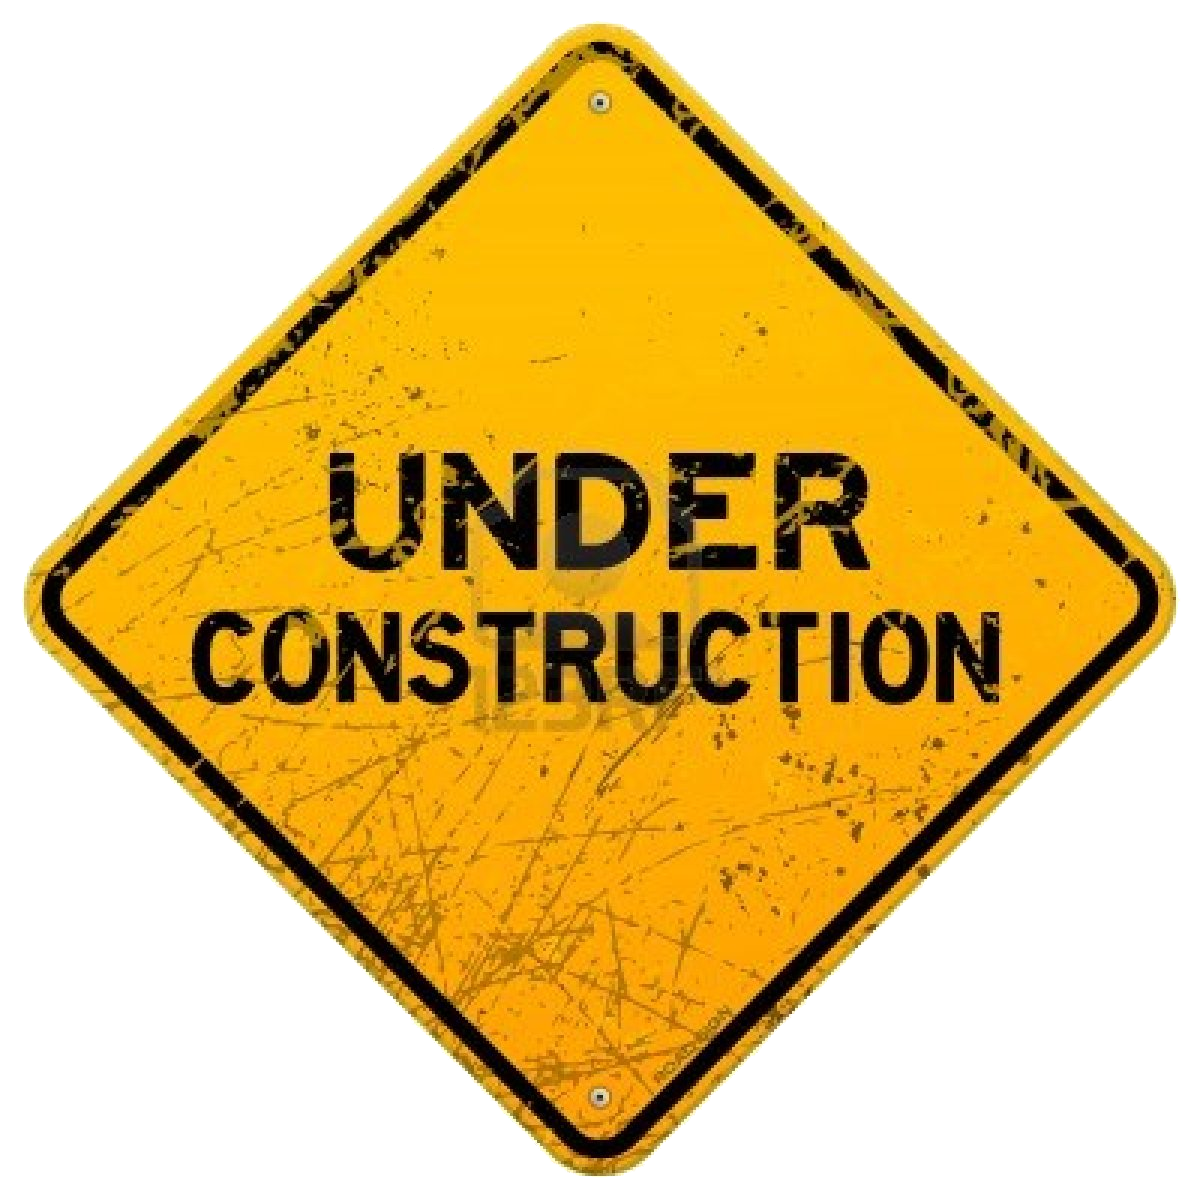 Under_Construction (1).png